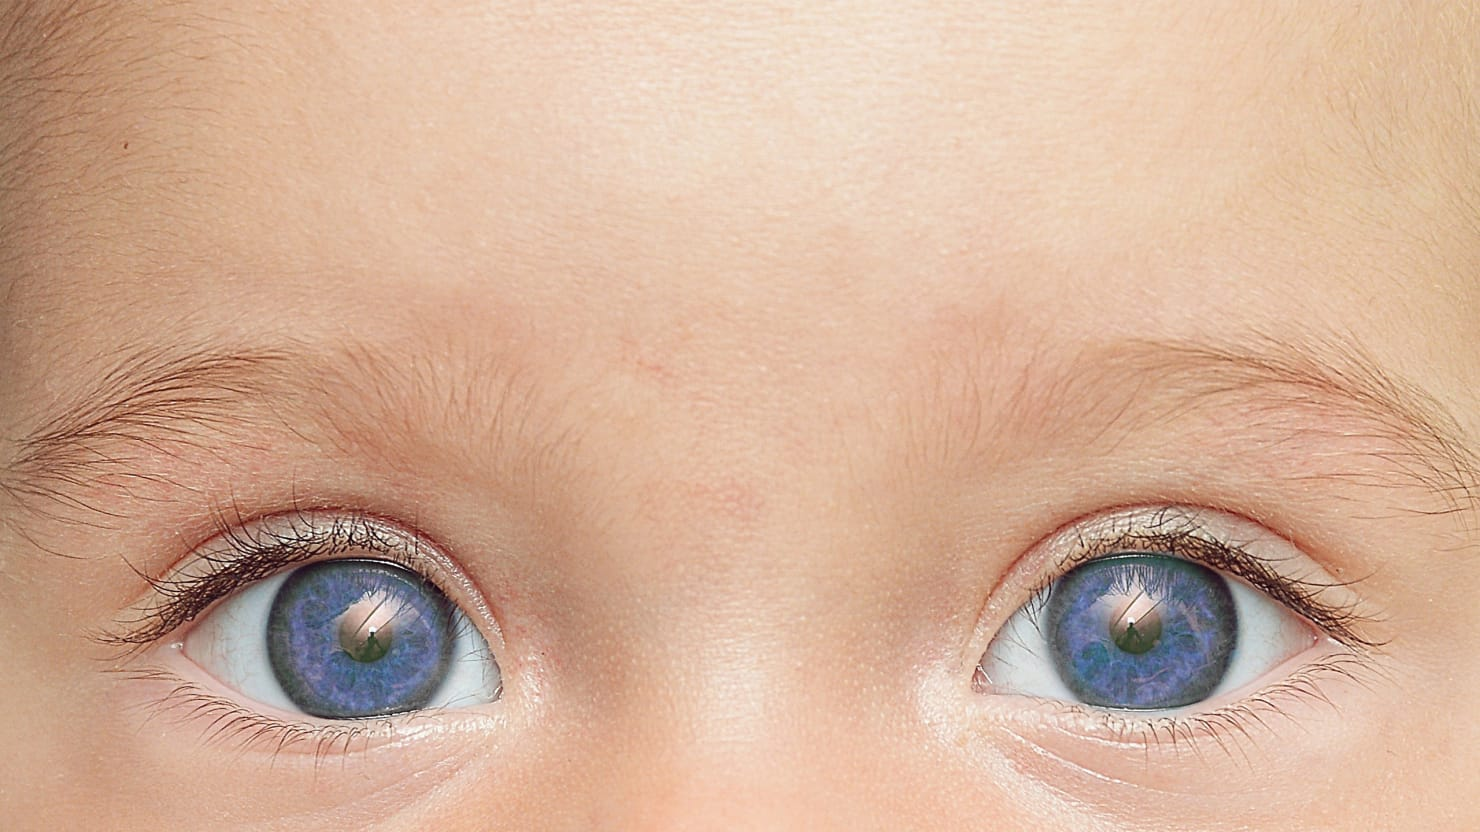 Want Blue Eyes With That Baby?: The Strange New World of Human Reproduction